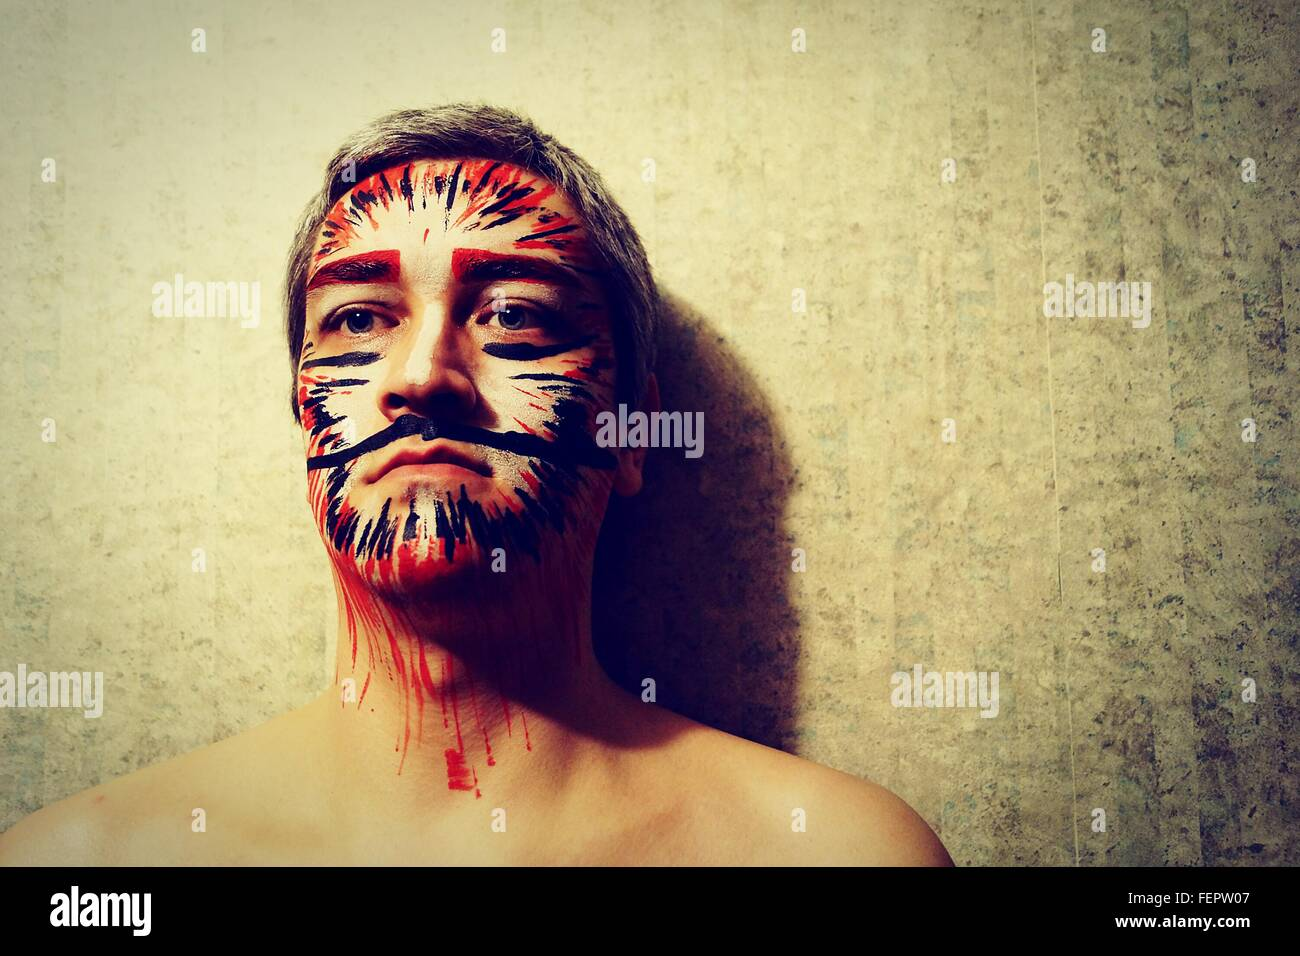 Close-Up Of Shirtless Man In Face Paint Against Wall - Stock Image